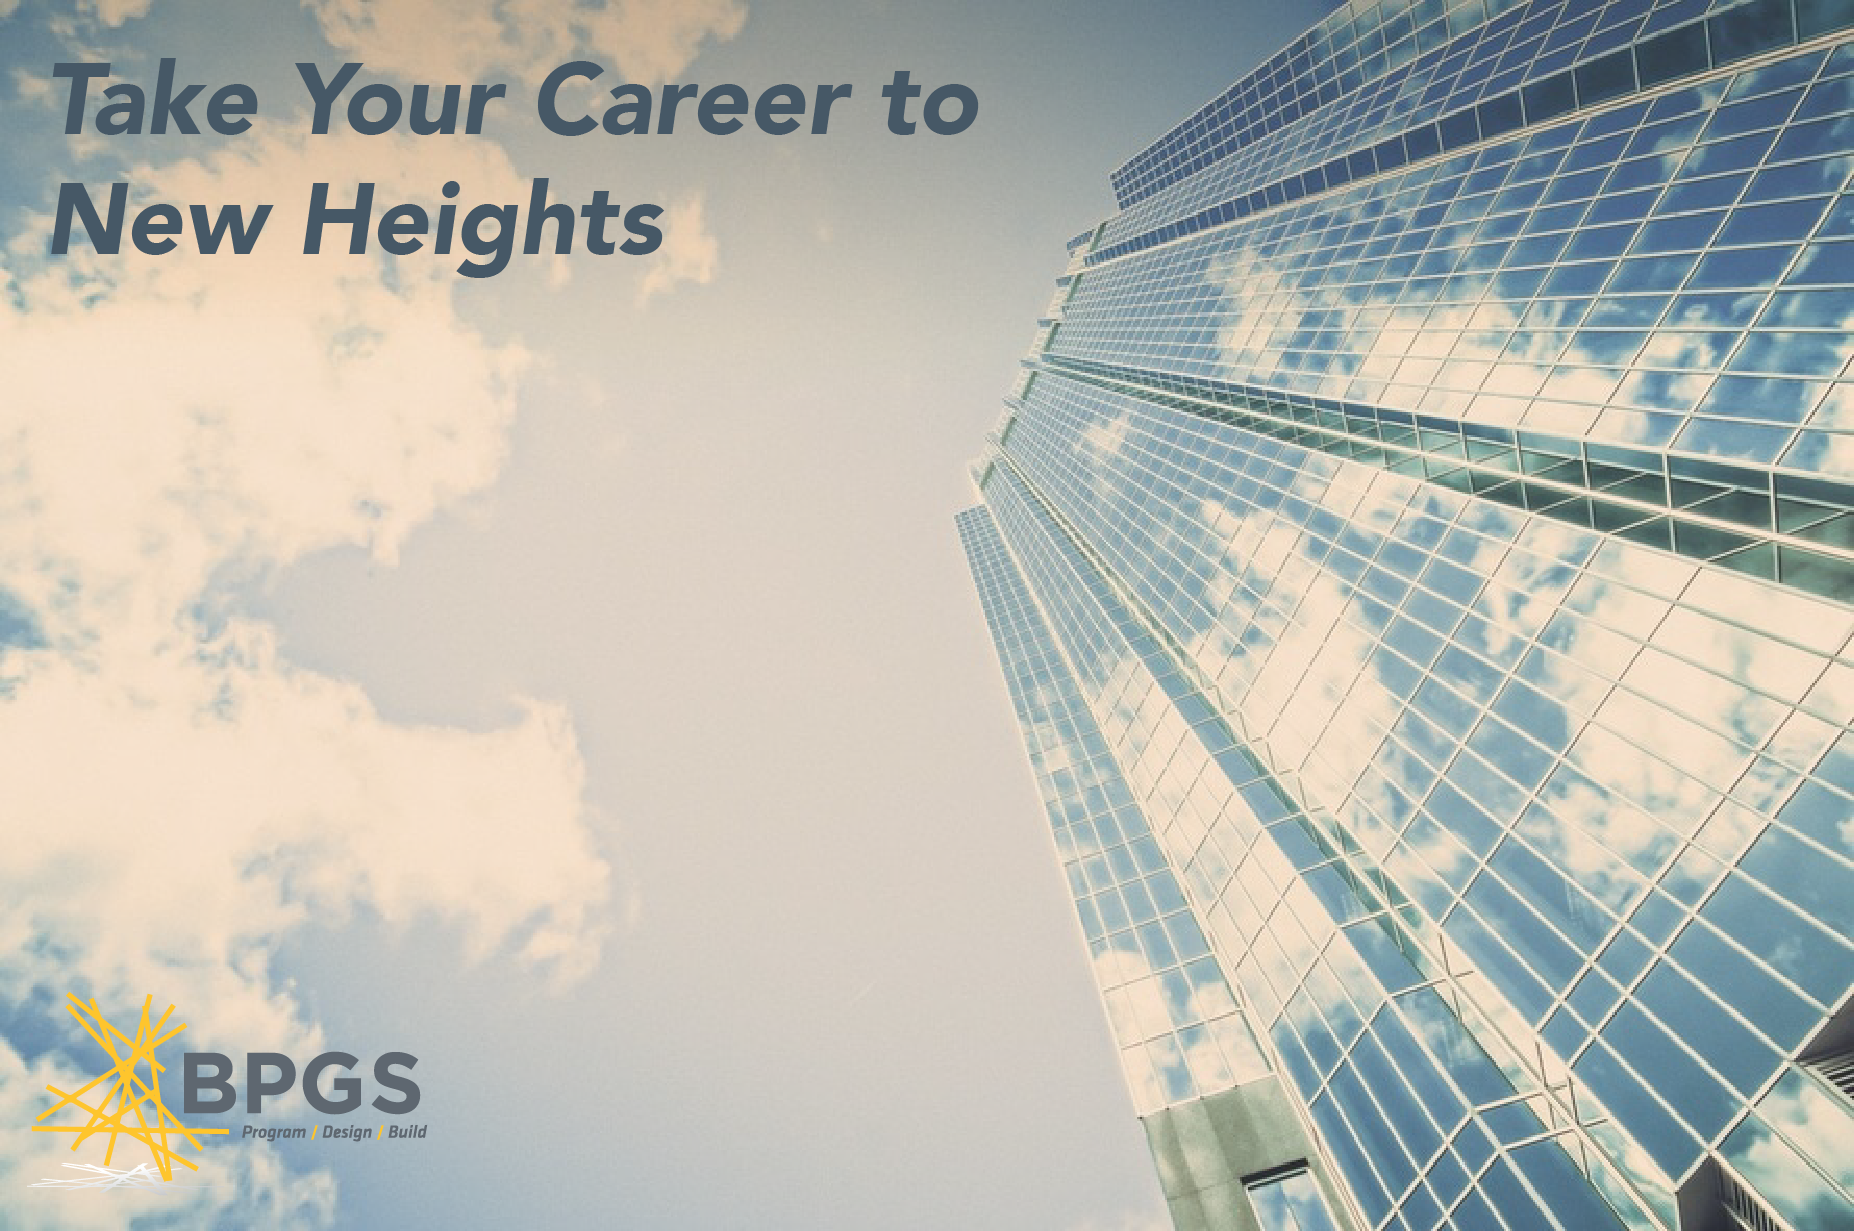 ake your career to new heights with BPGS Construction